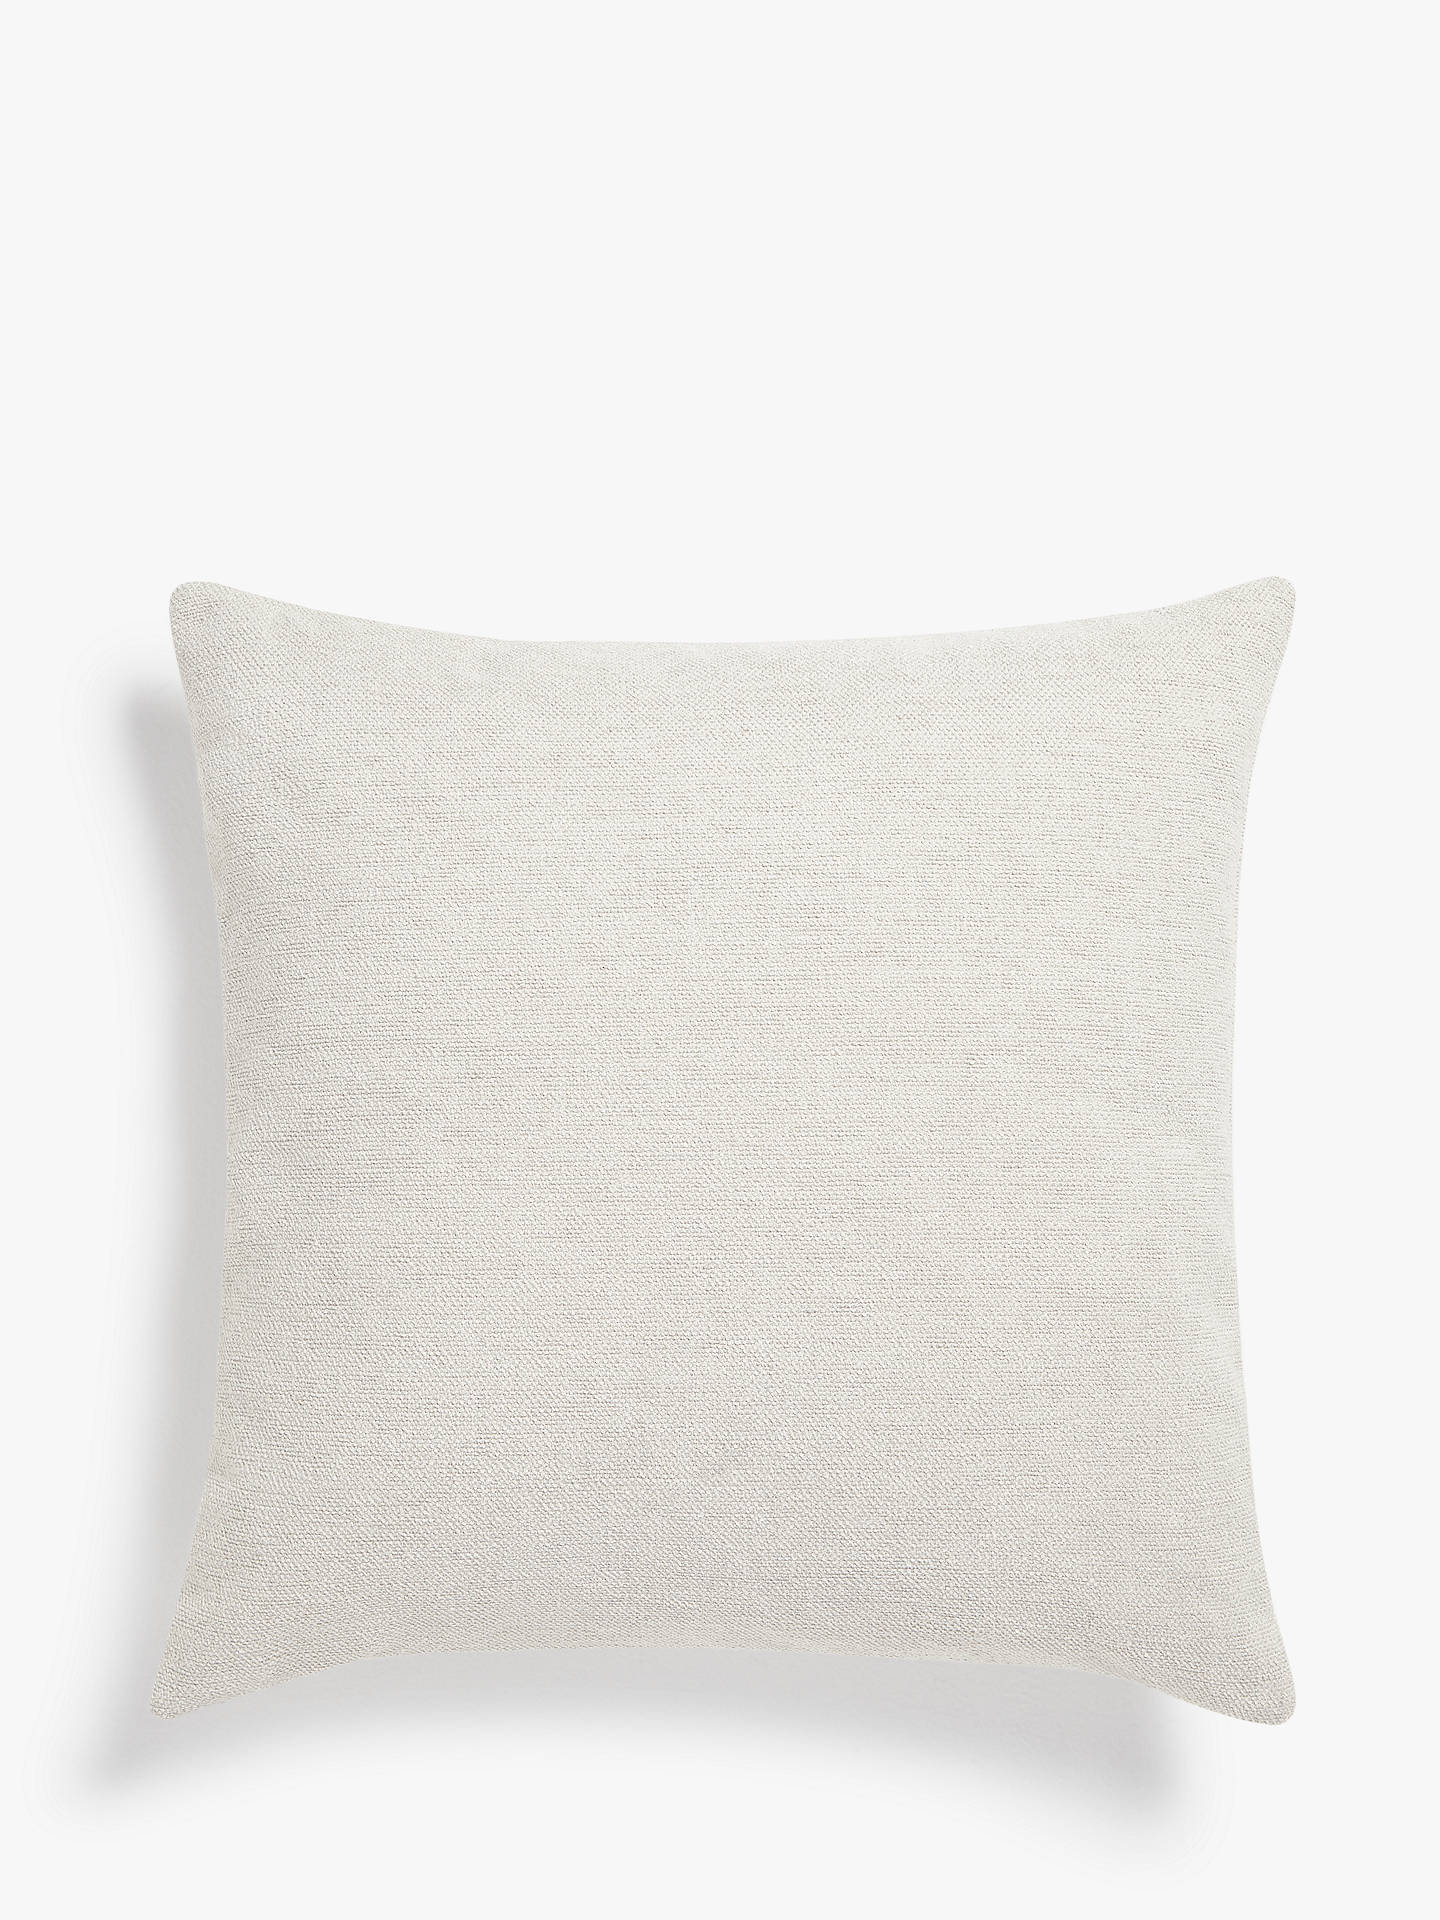 Buy Design Project by John Lewis No.033 Cushion, White Online at johnlewis.com